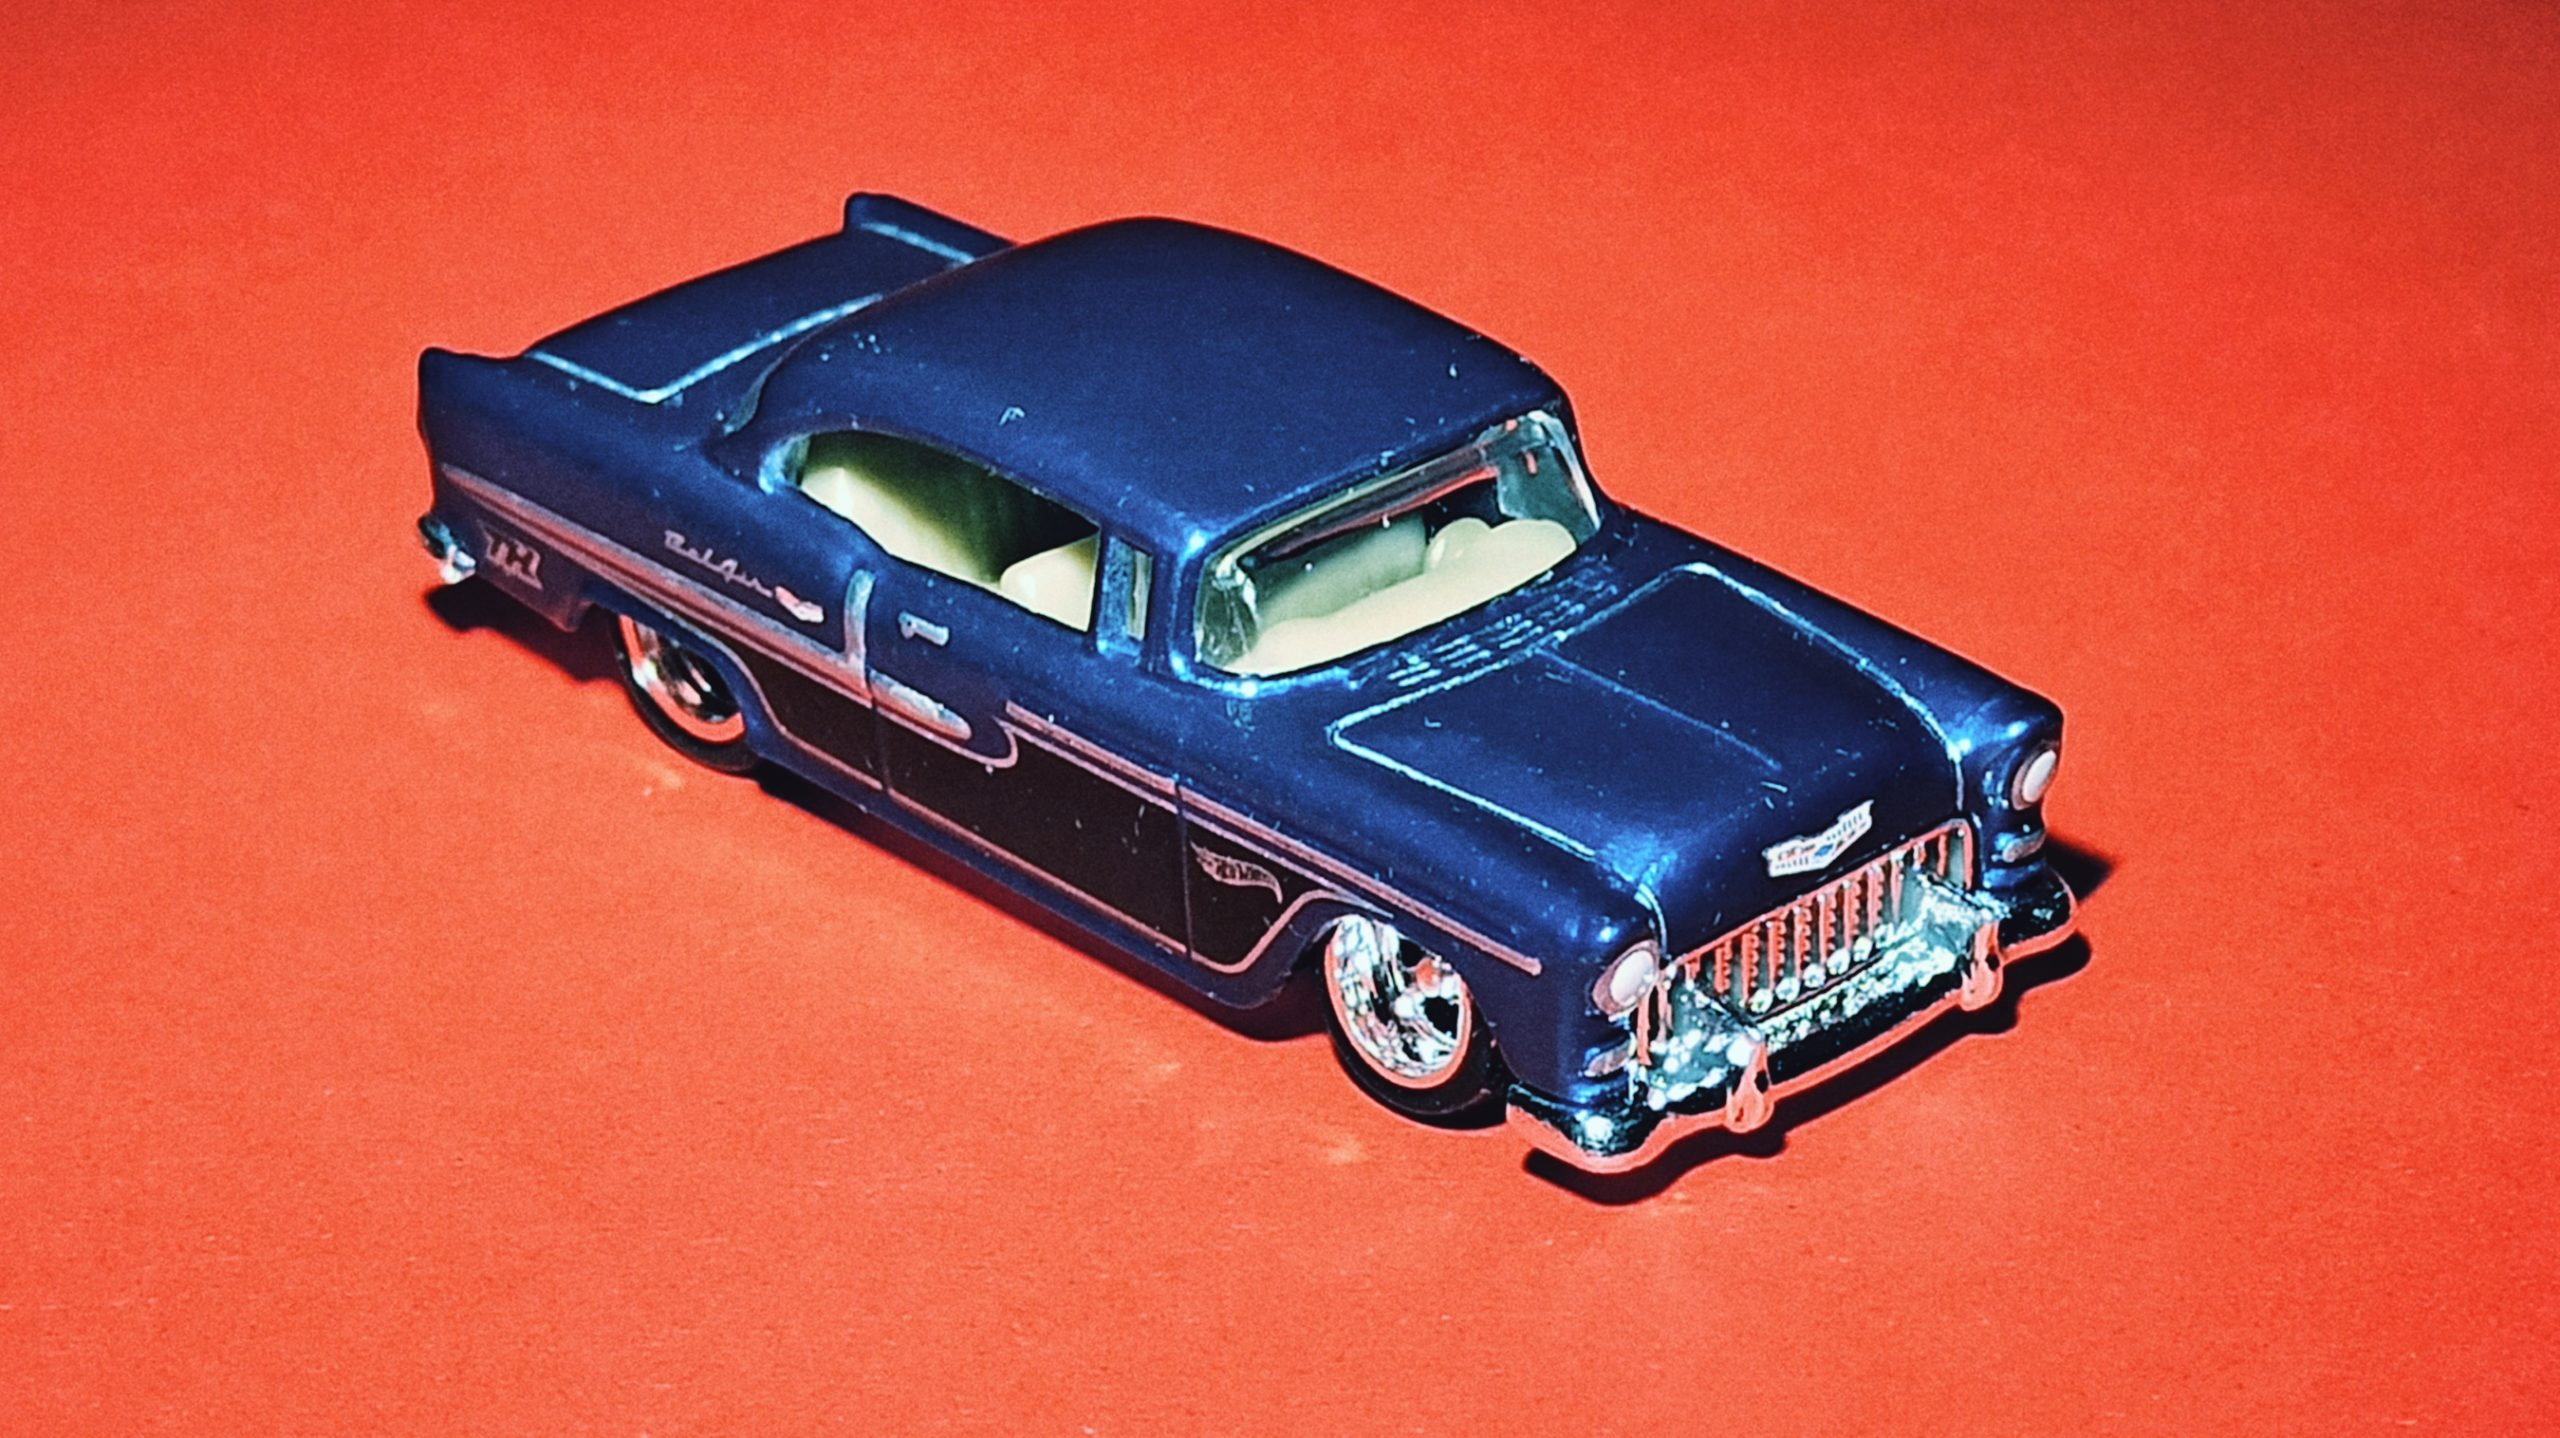 Hot Wheels '55 Chevy () 2020 (20/250) Chevy Bel Air (175) spectraflame blue Super Treasure Hunt (STH) top angle